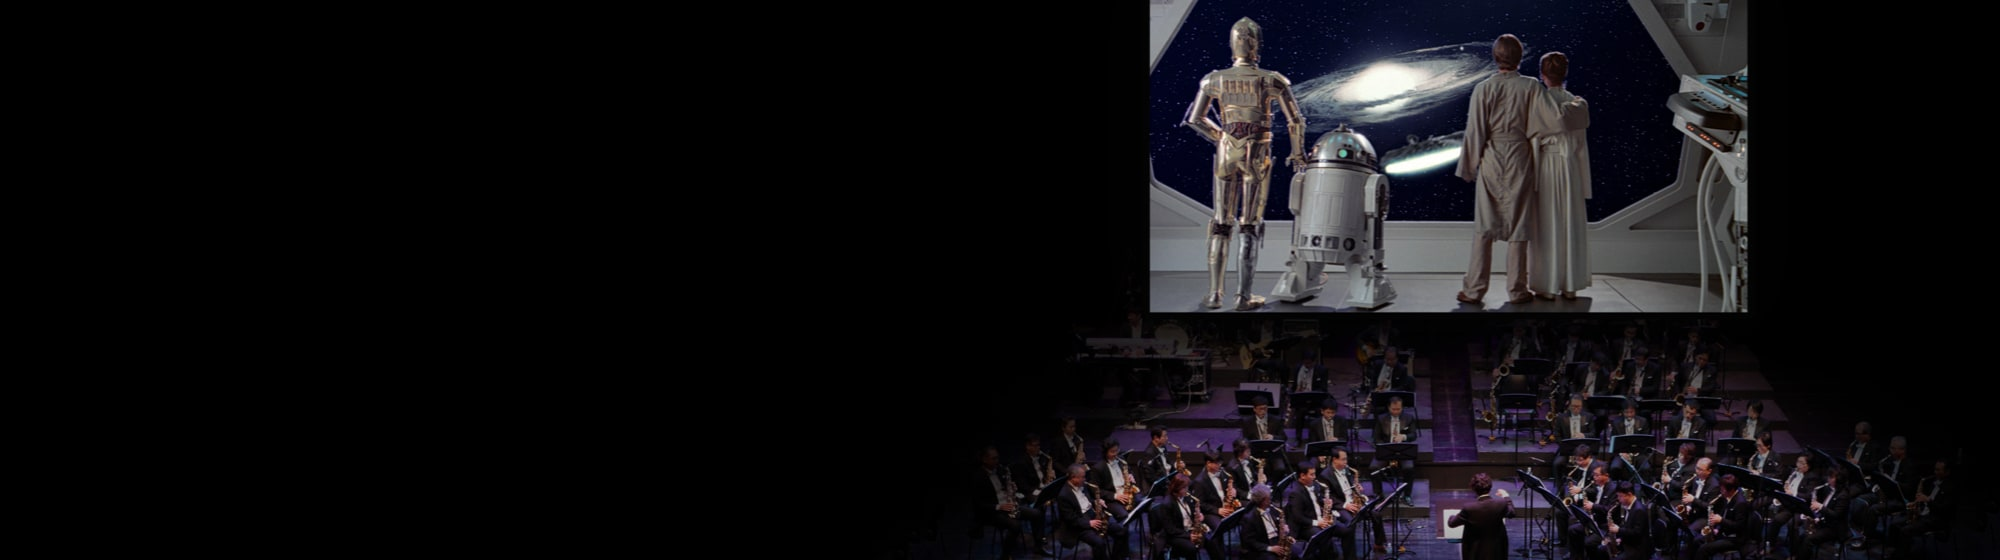 Star Wars in Concert | Empire Strikes Back